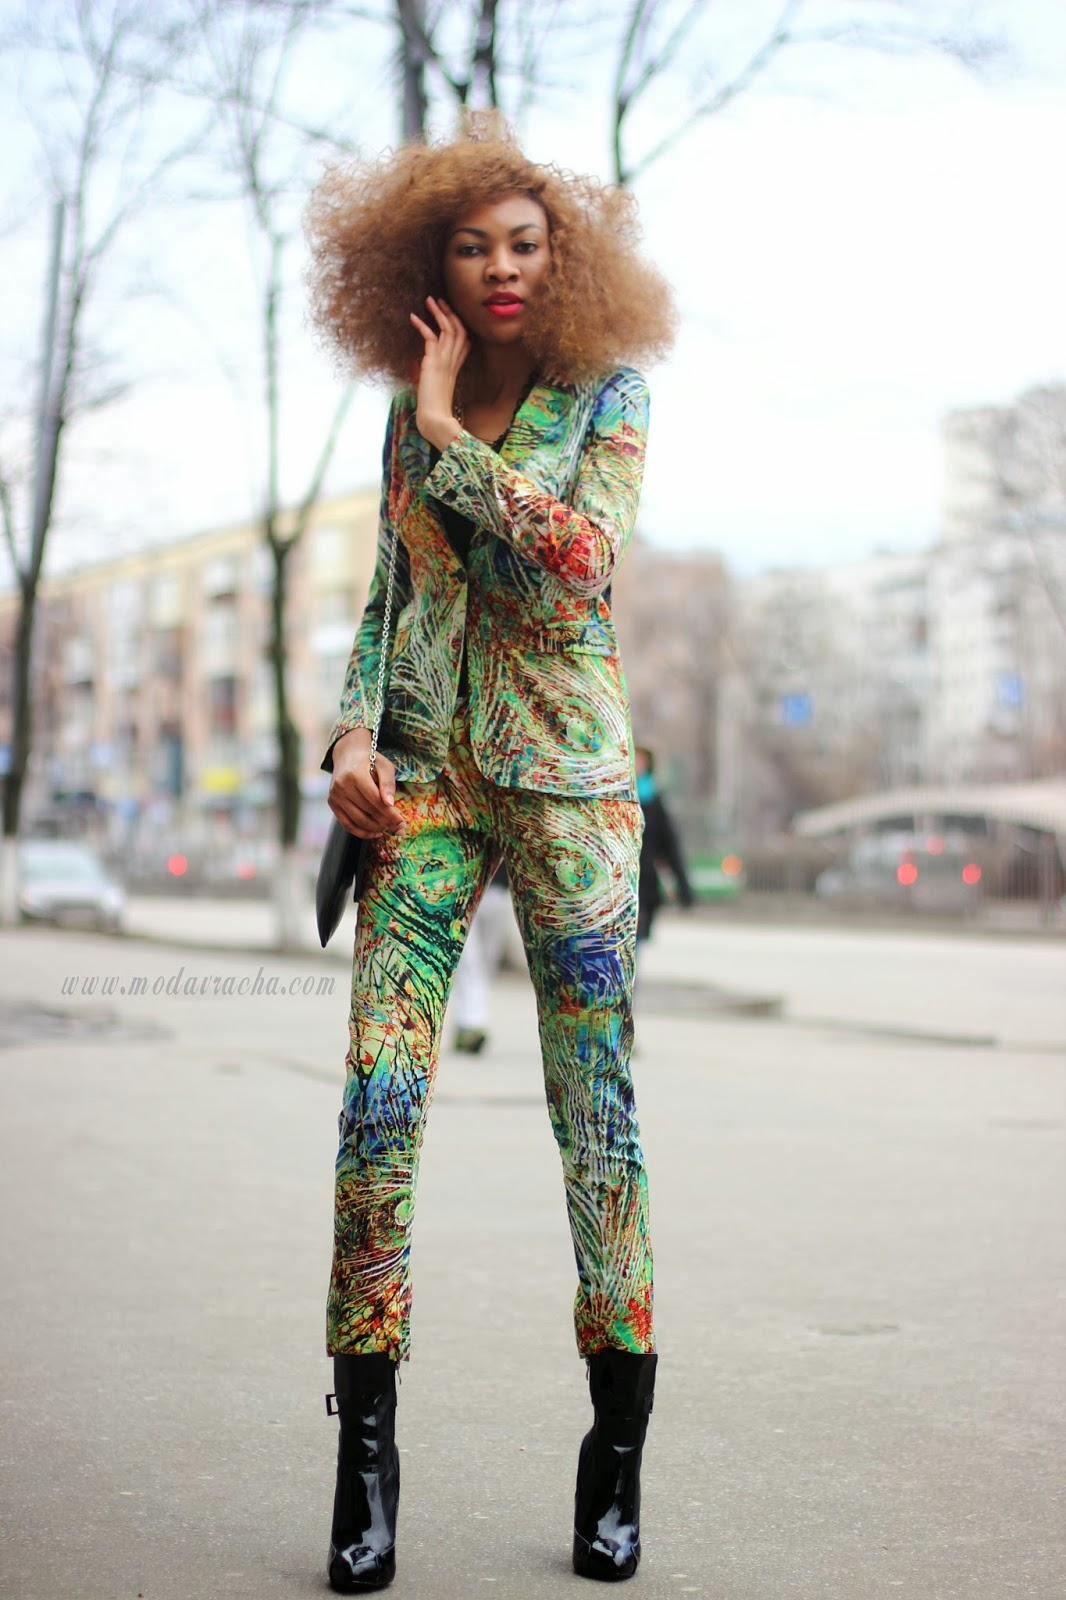 Nigerian fashion blogger modavracha in matchy matchy prints outfit and over the ankle boots.